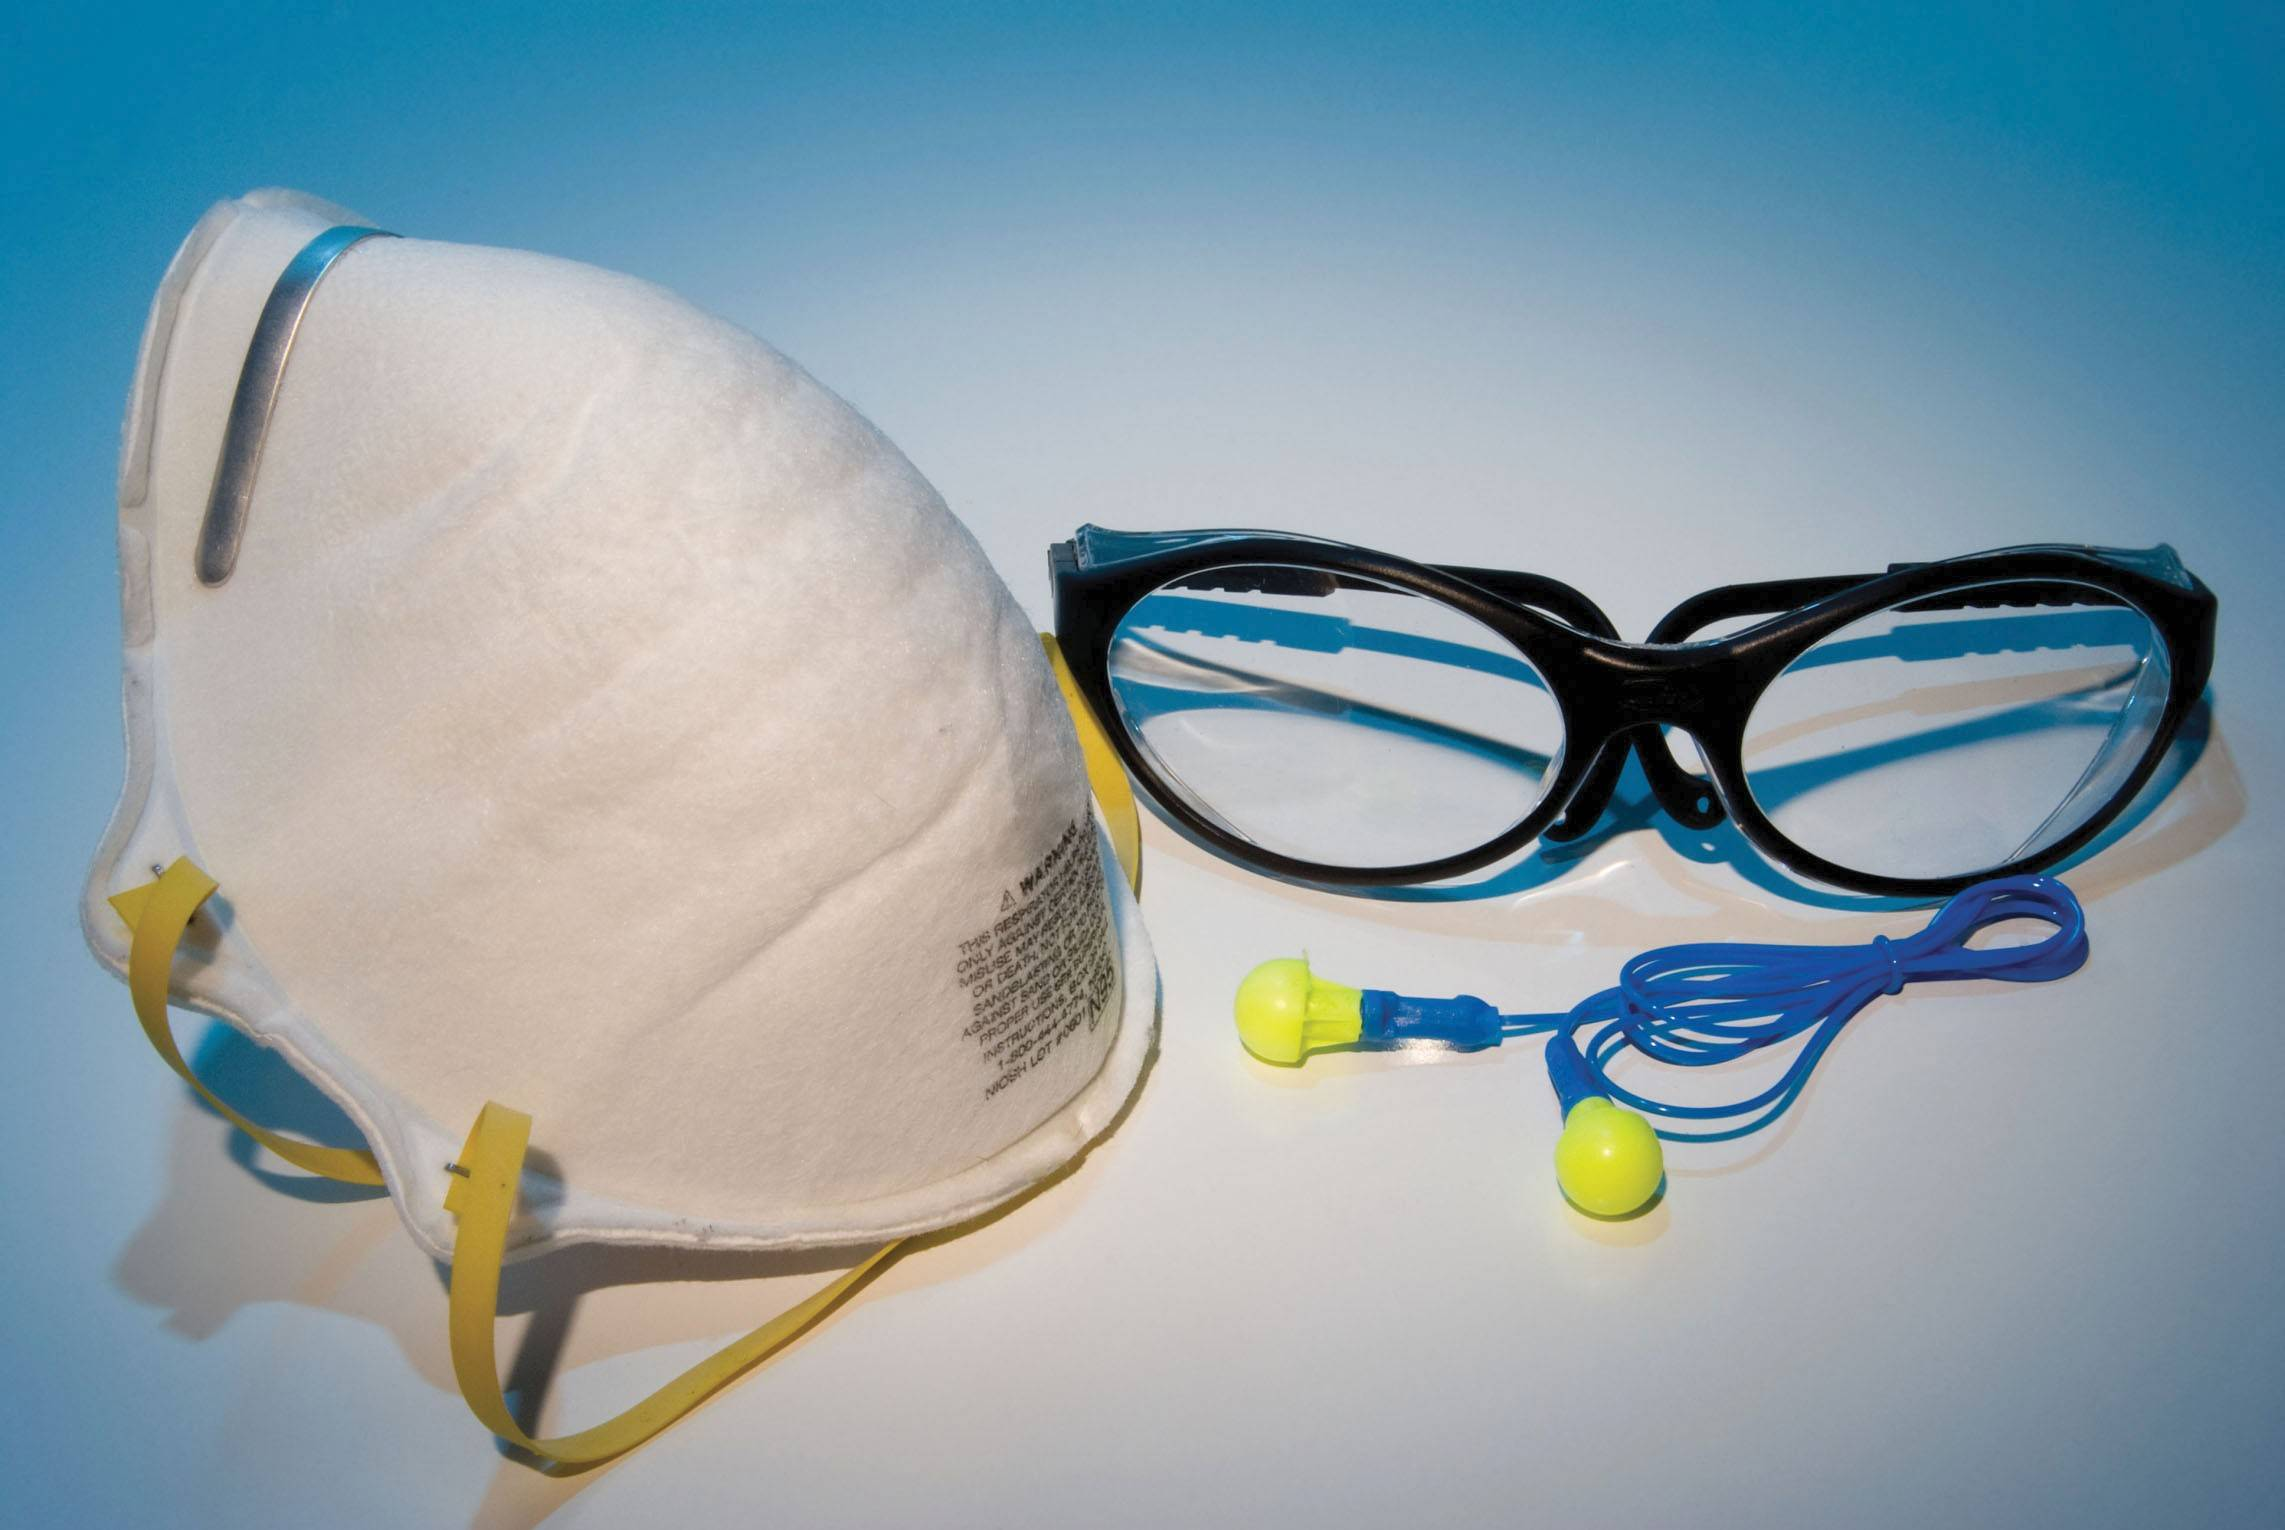 You'll want to protect your eyes and ears when working with most tools, and masks help when you are working with paint or other harsh chemicals.